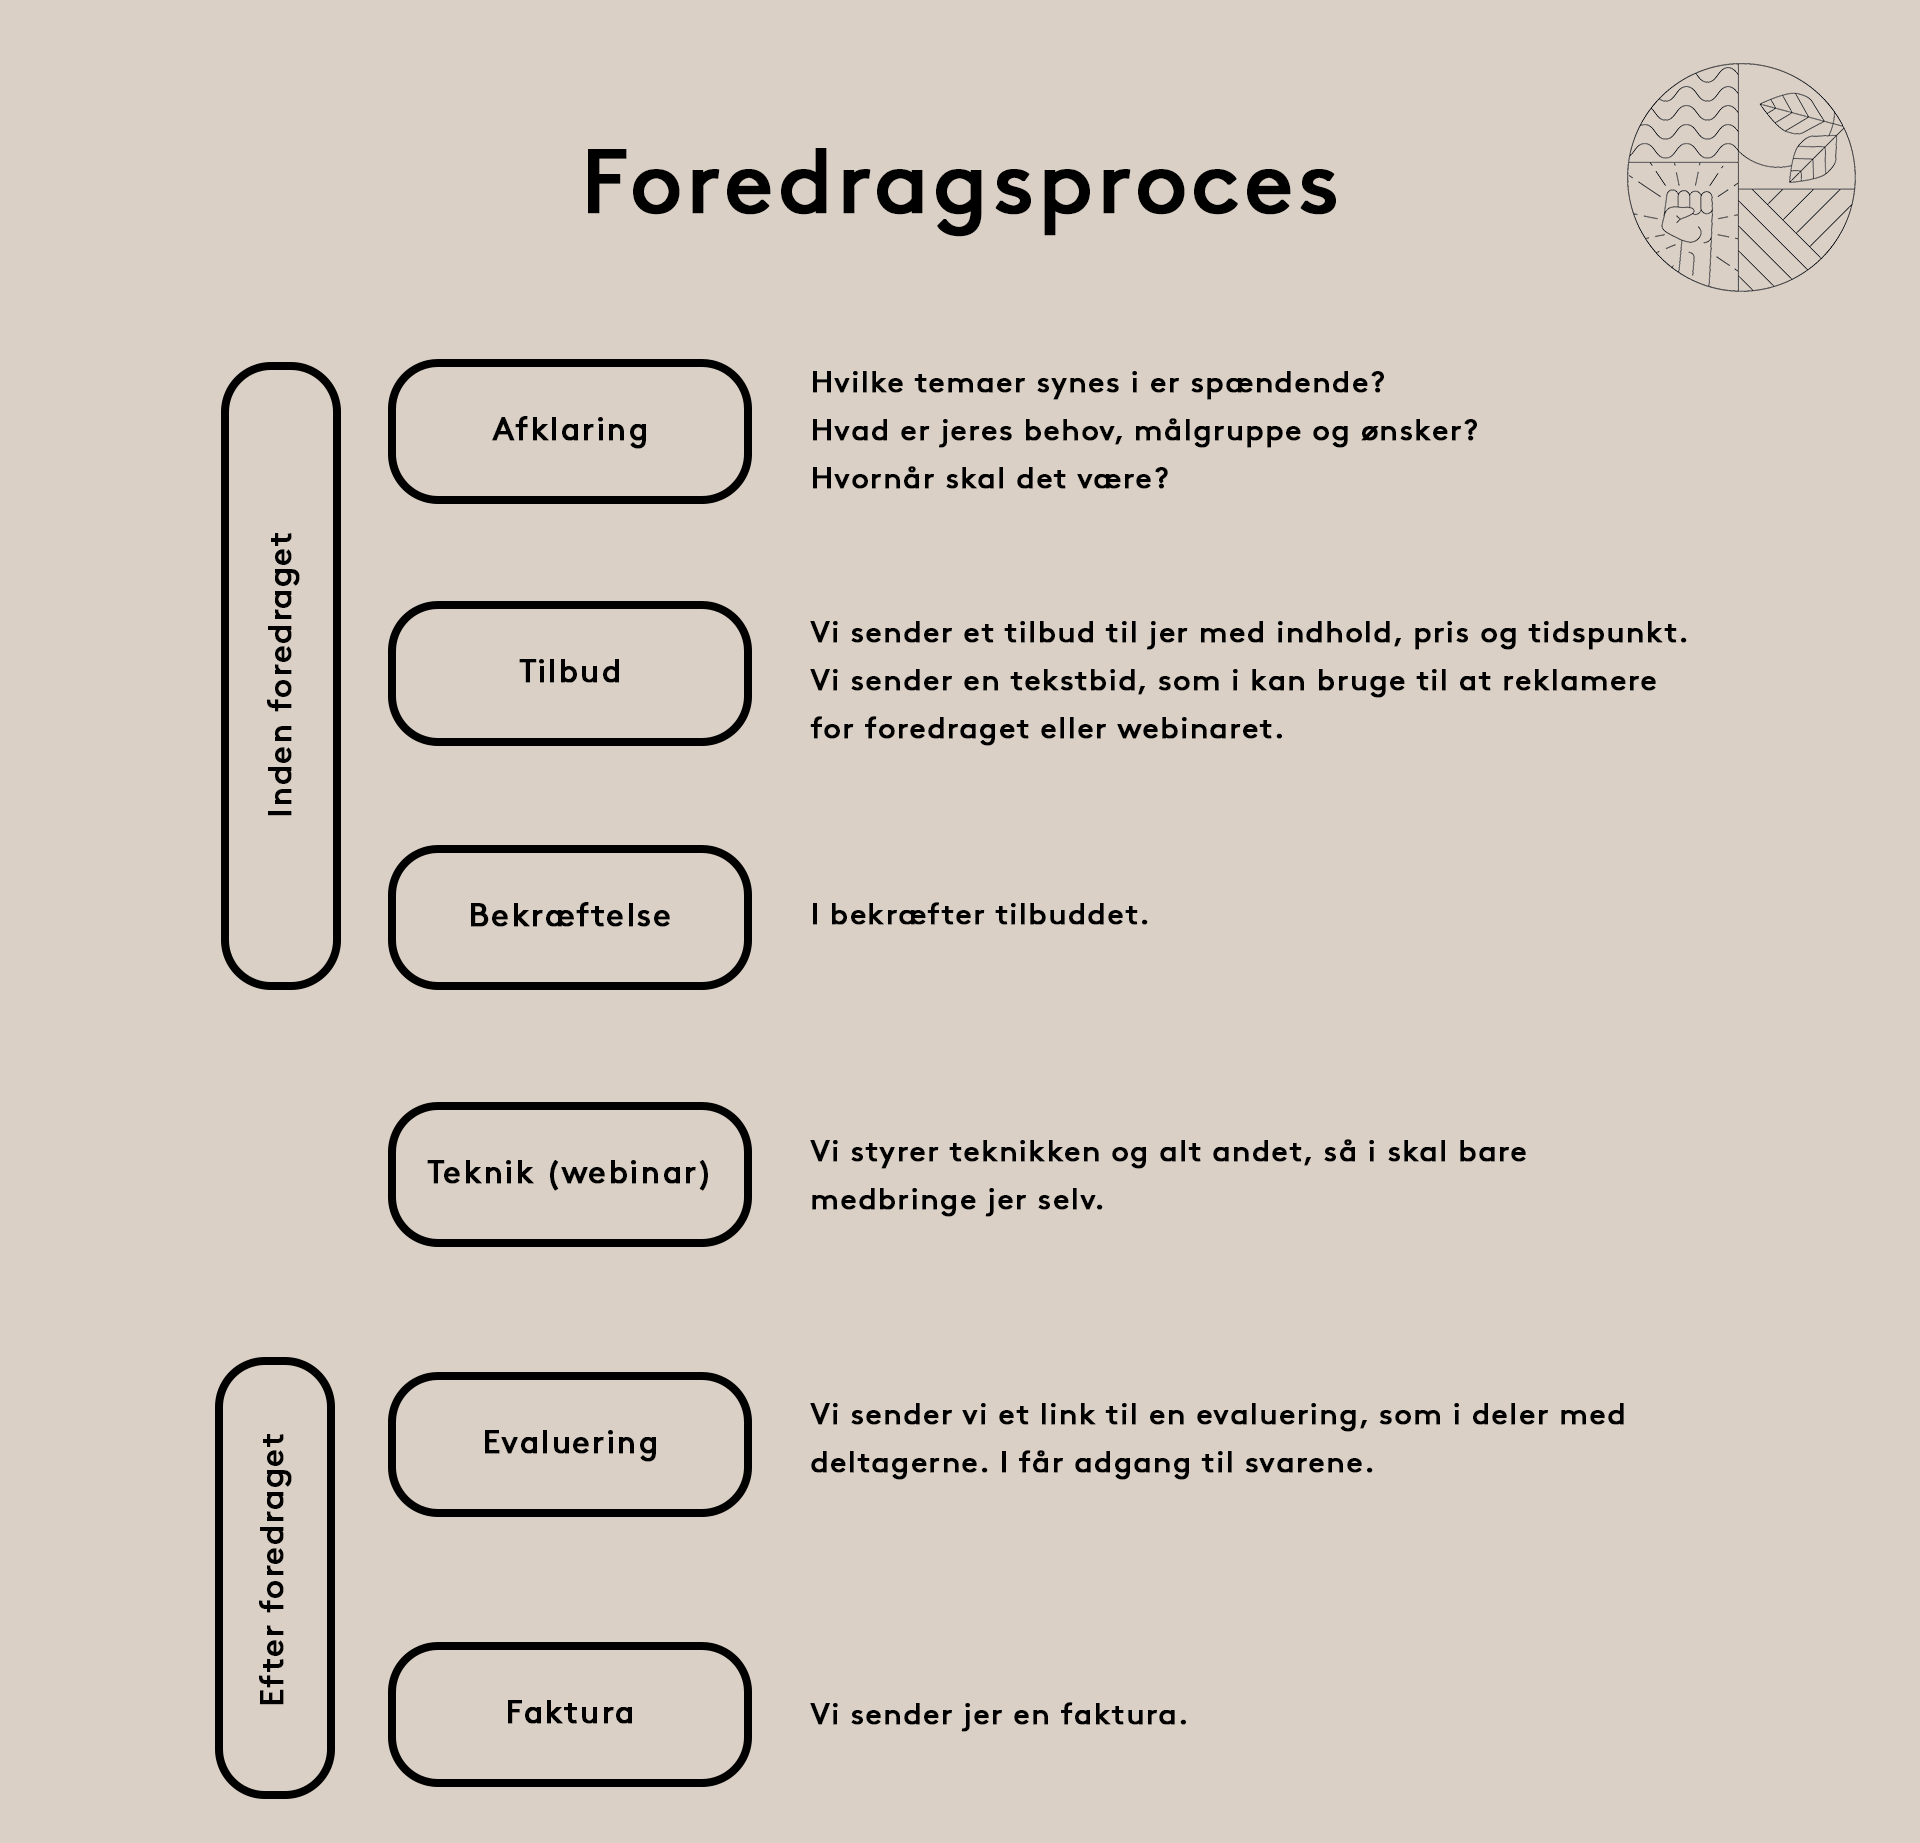 foredragsproces